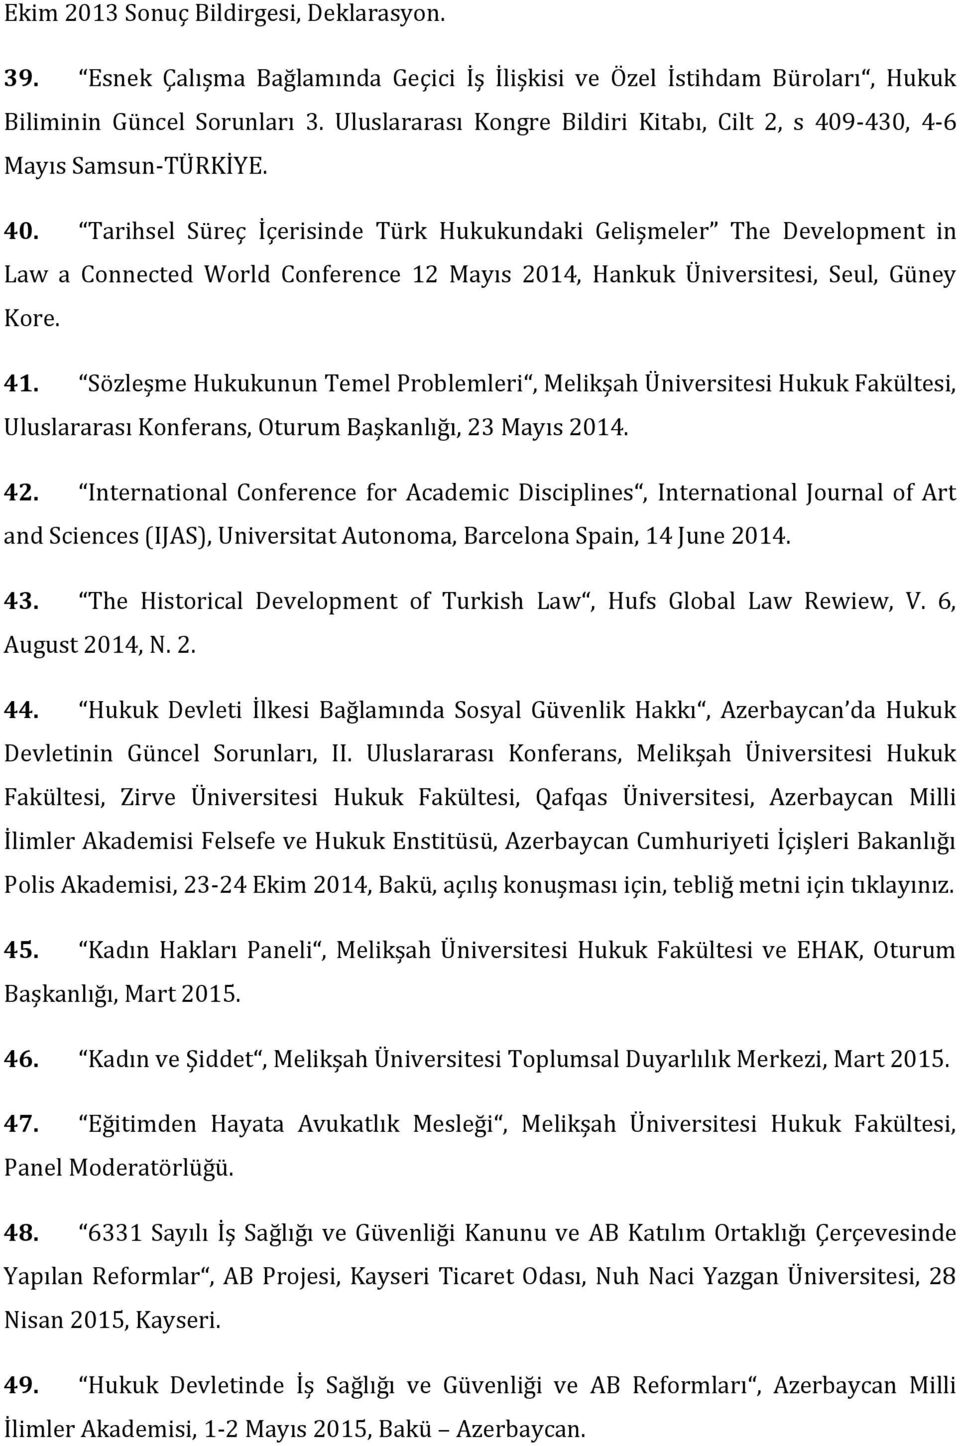 -430, 4-6 Mayıs Samsun-TÜRKİYE. 40. Tarihsel Süreç İçerisinde Türk Hukukundaki Gelişmeler The Development in Law a Connected World Conference 12 Mayıs 2014, Hankuk Üniversitesi, Seul, Güney Kore. 41.